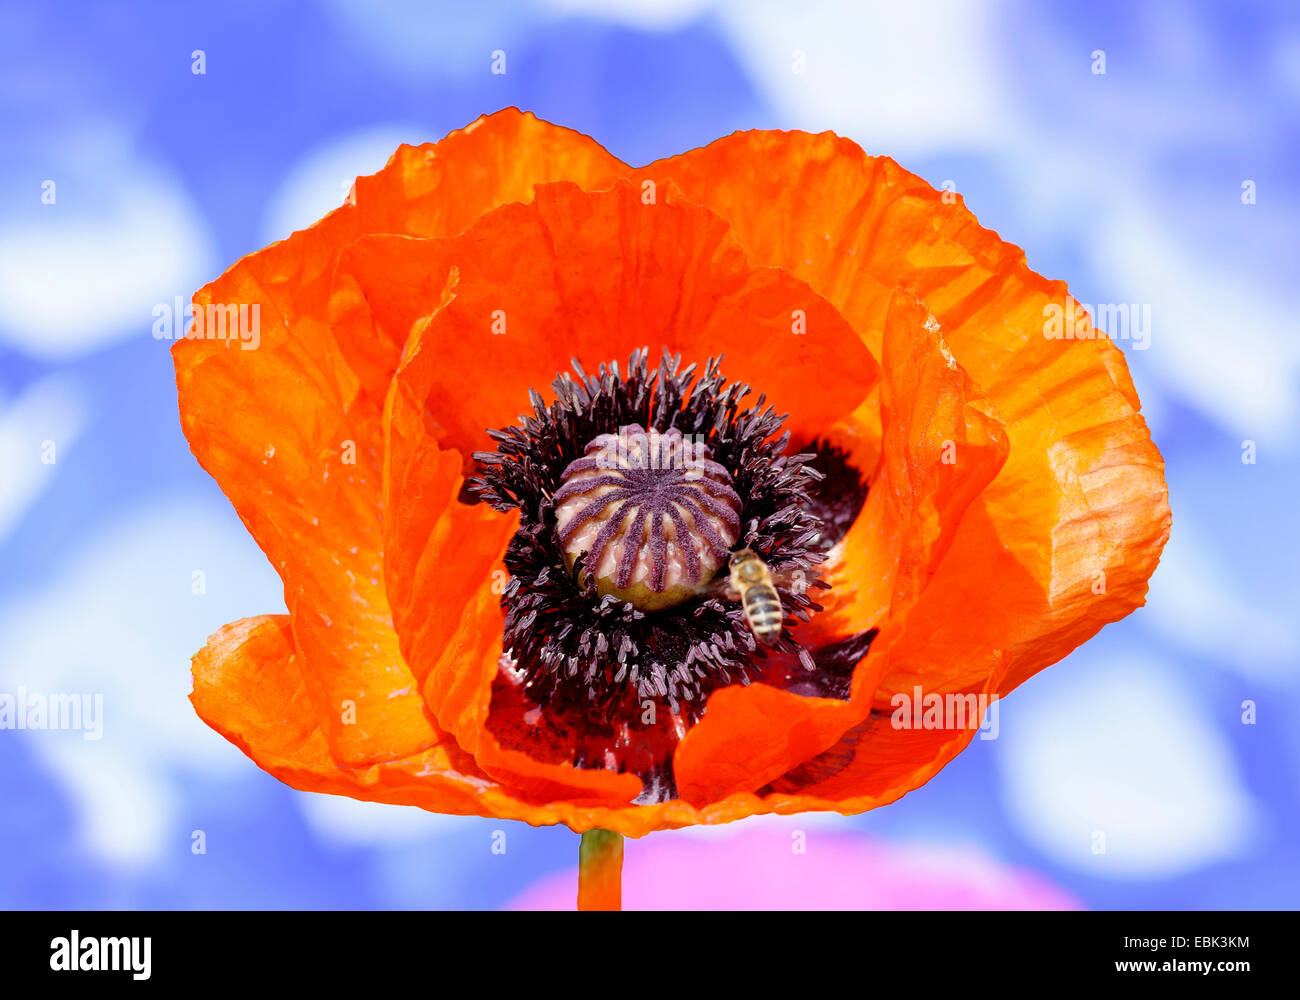 Common poppy, Corn poppy, Red poppy (Papaver rhoeas), flower with bee in front of cloudy sky, Germany, Bavaria, - Stock Image